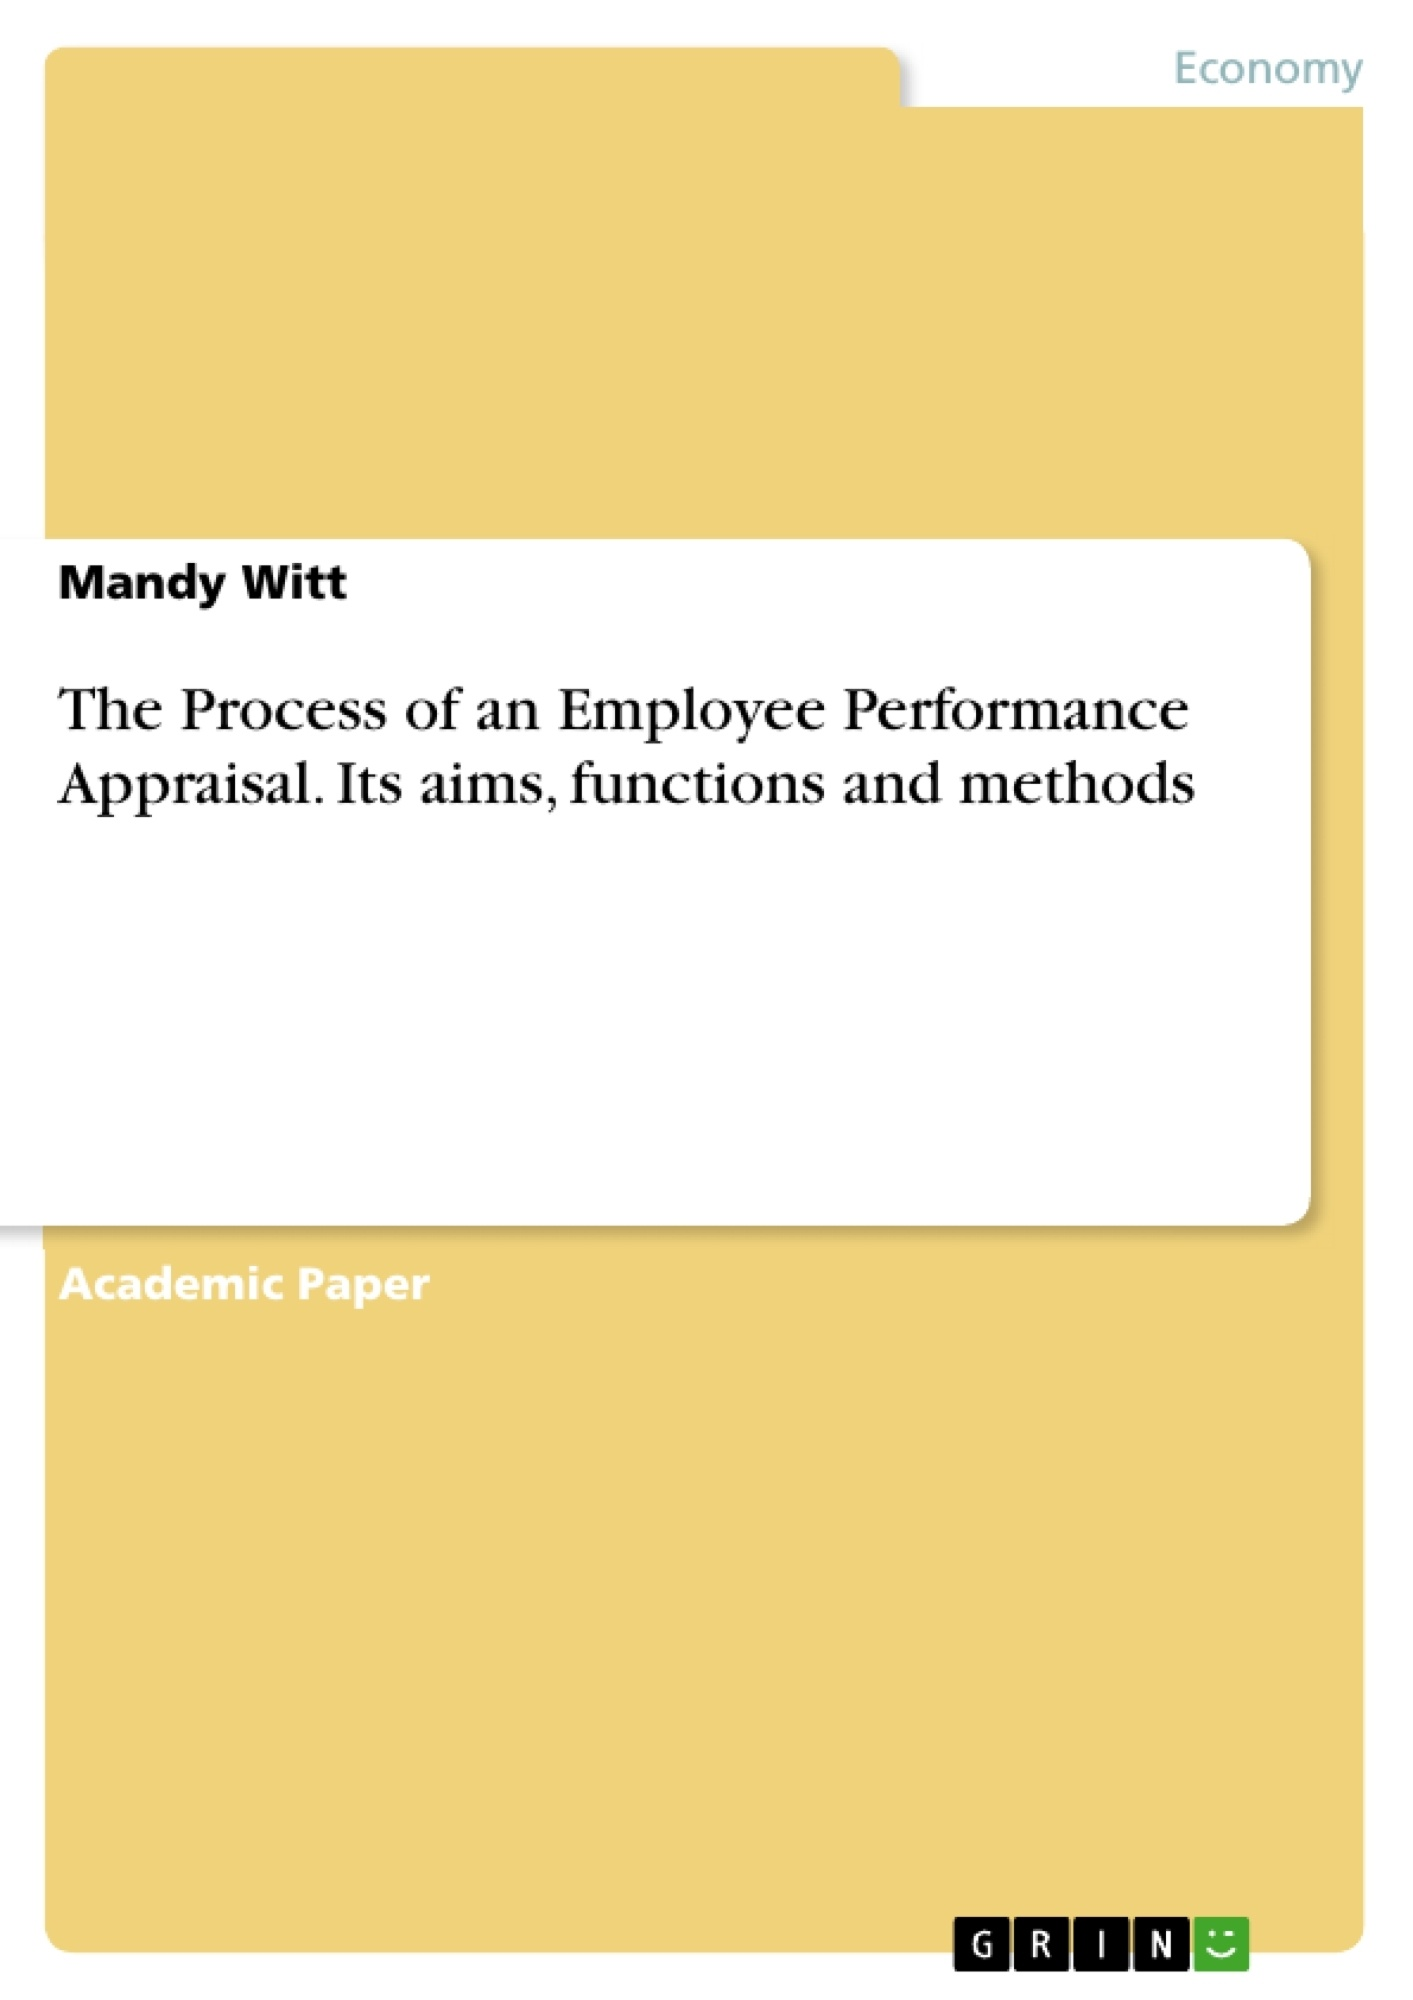 Title: The Process of an Employee Performance Appraisal. Its aims, functions and methods